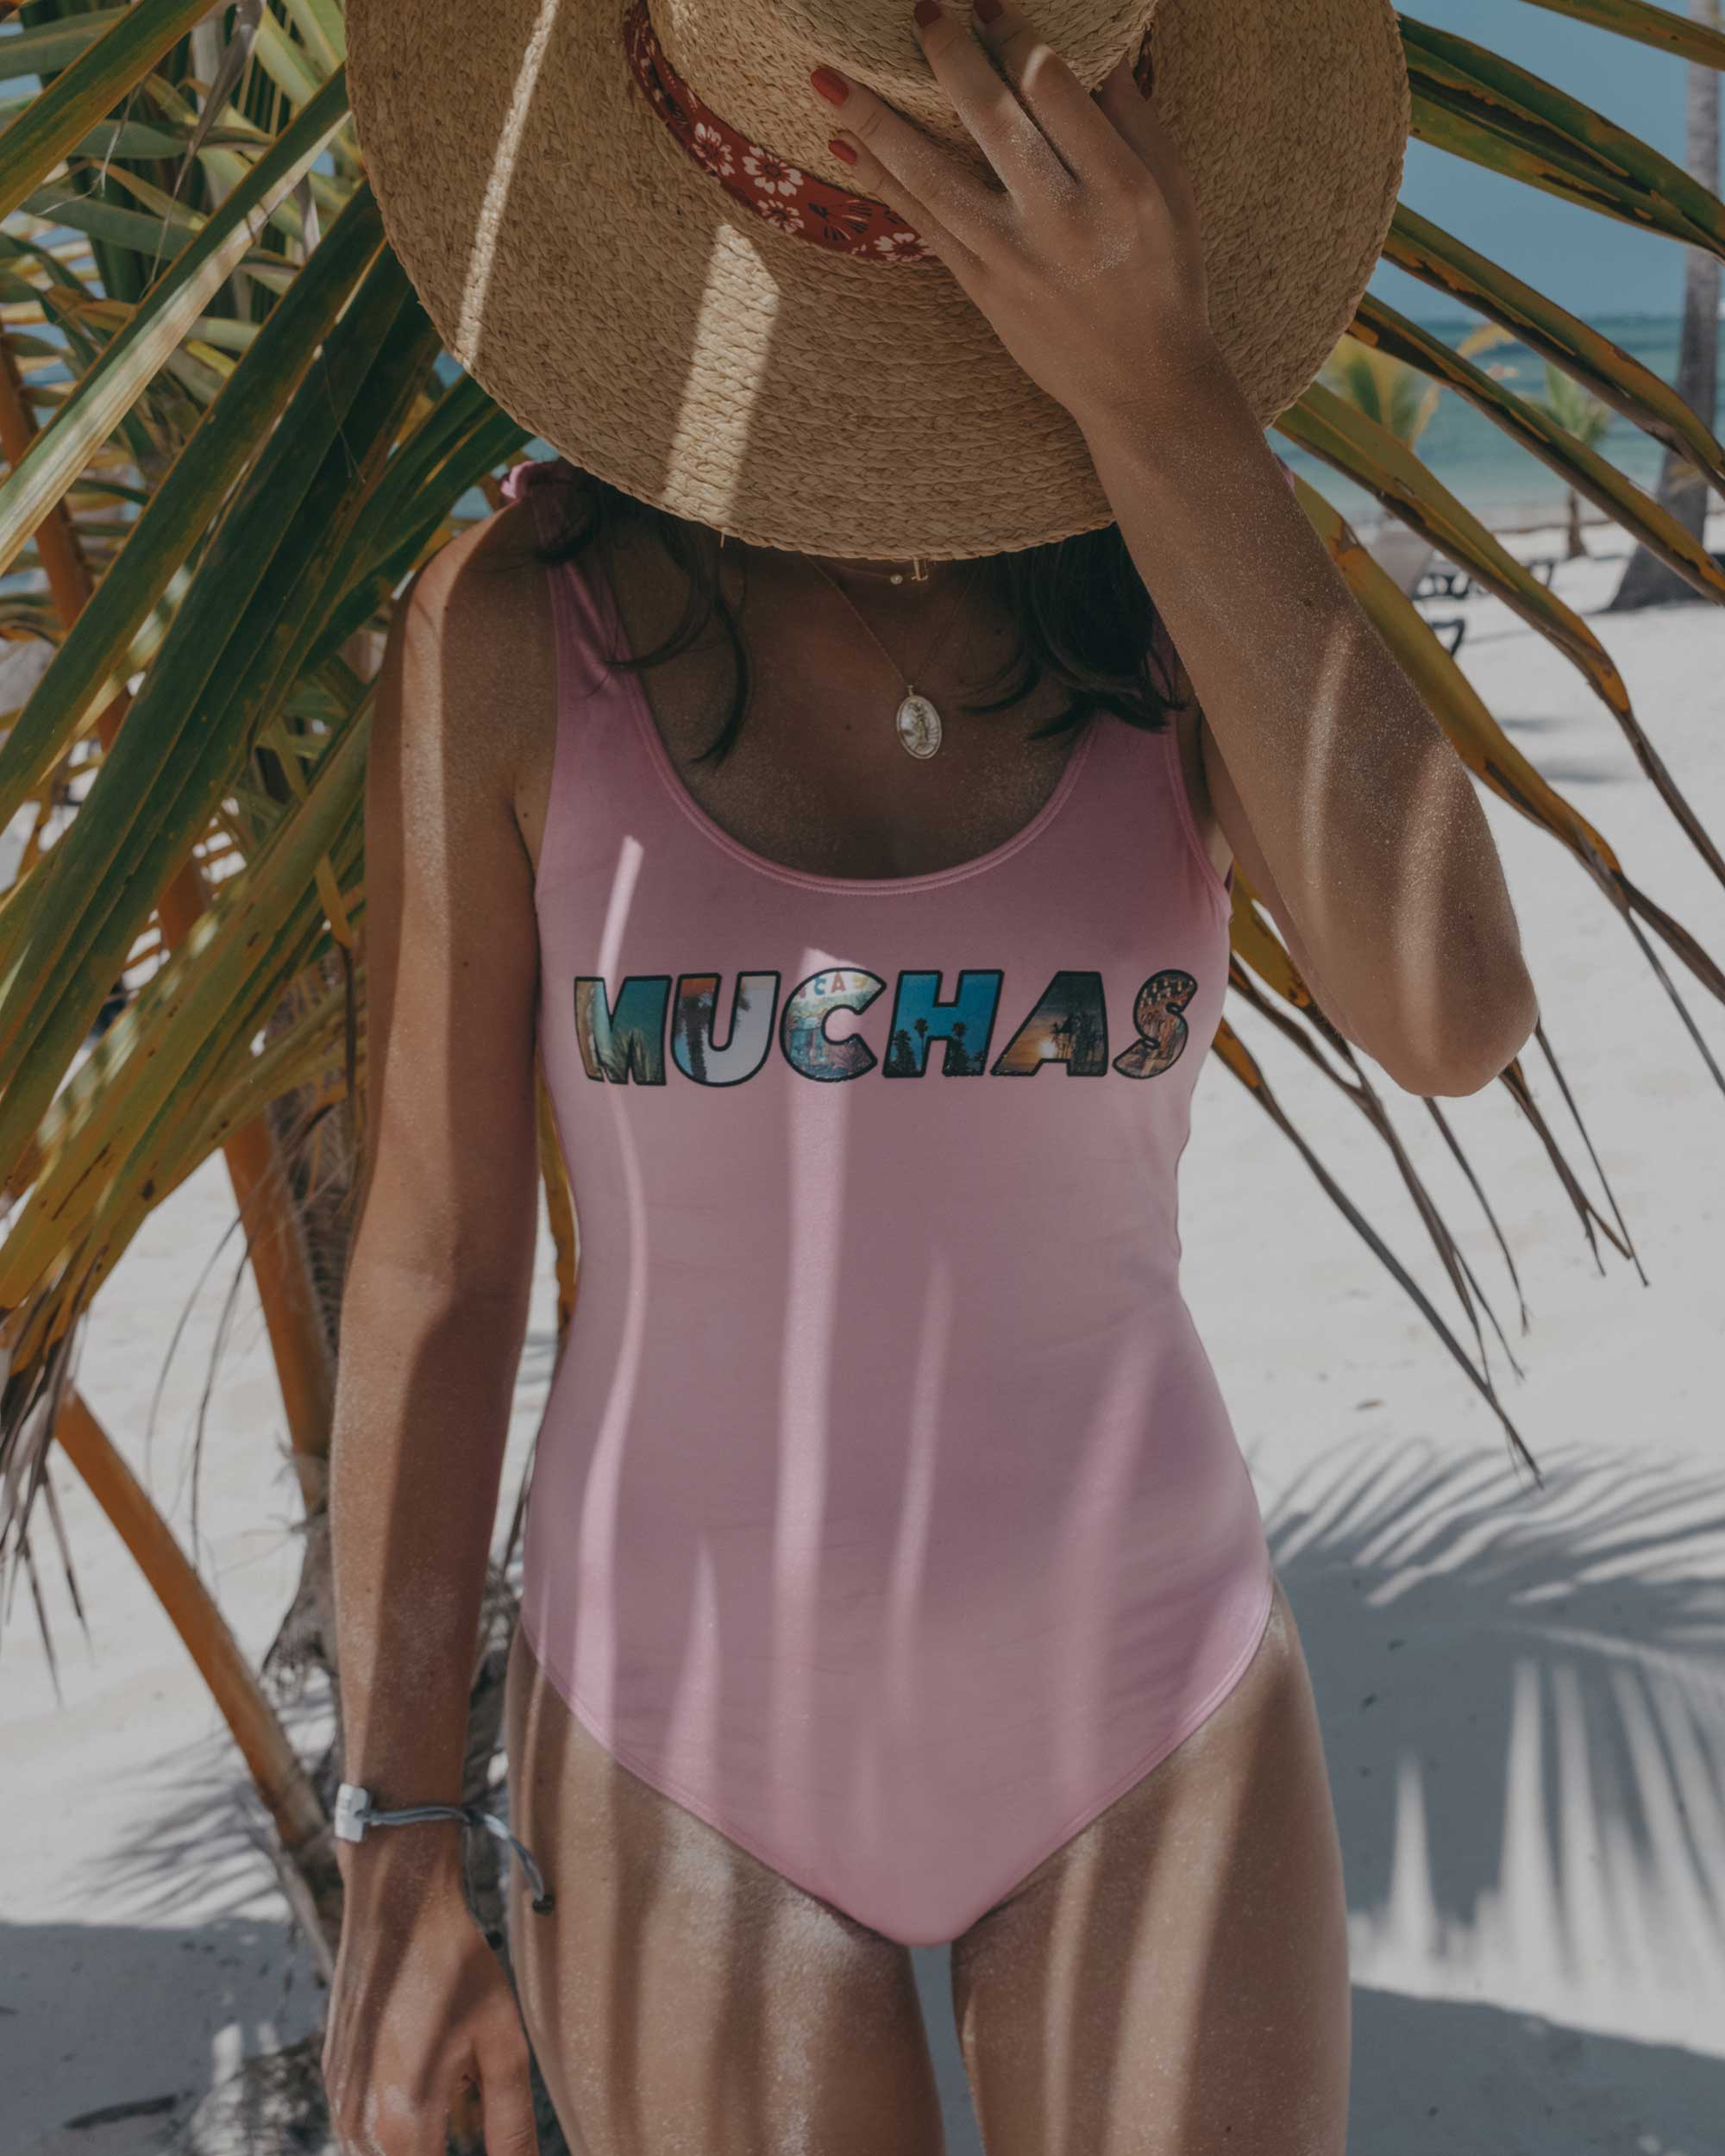 pink one piece swimsuit reading muchas dominican republic beach outfit7.jpg